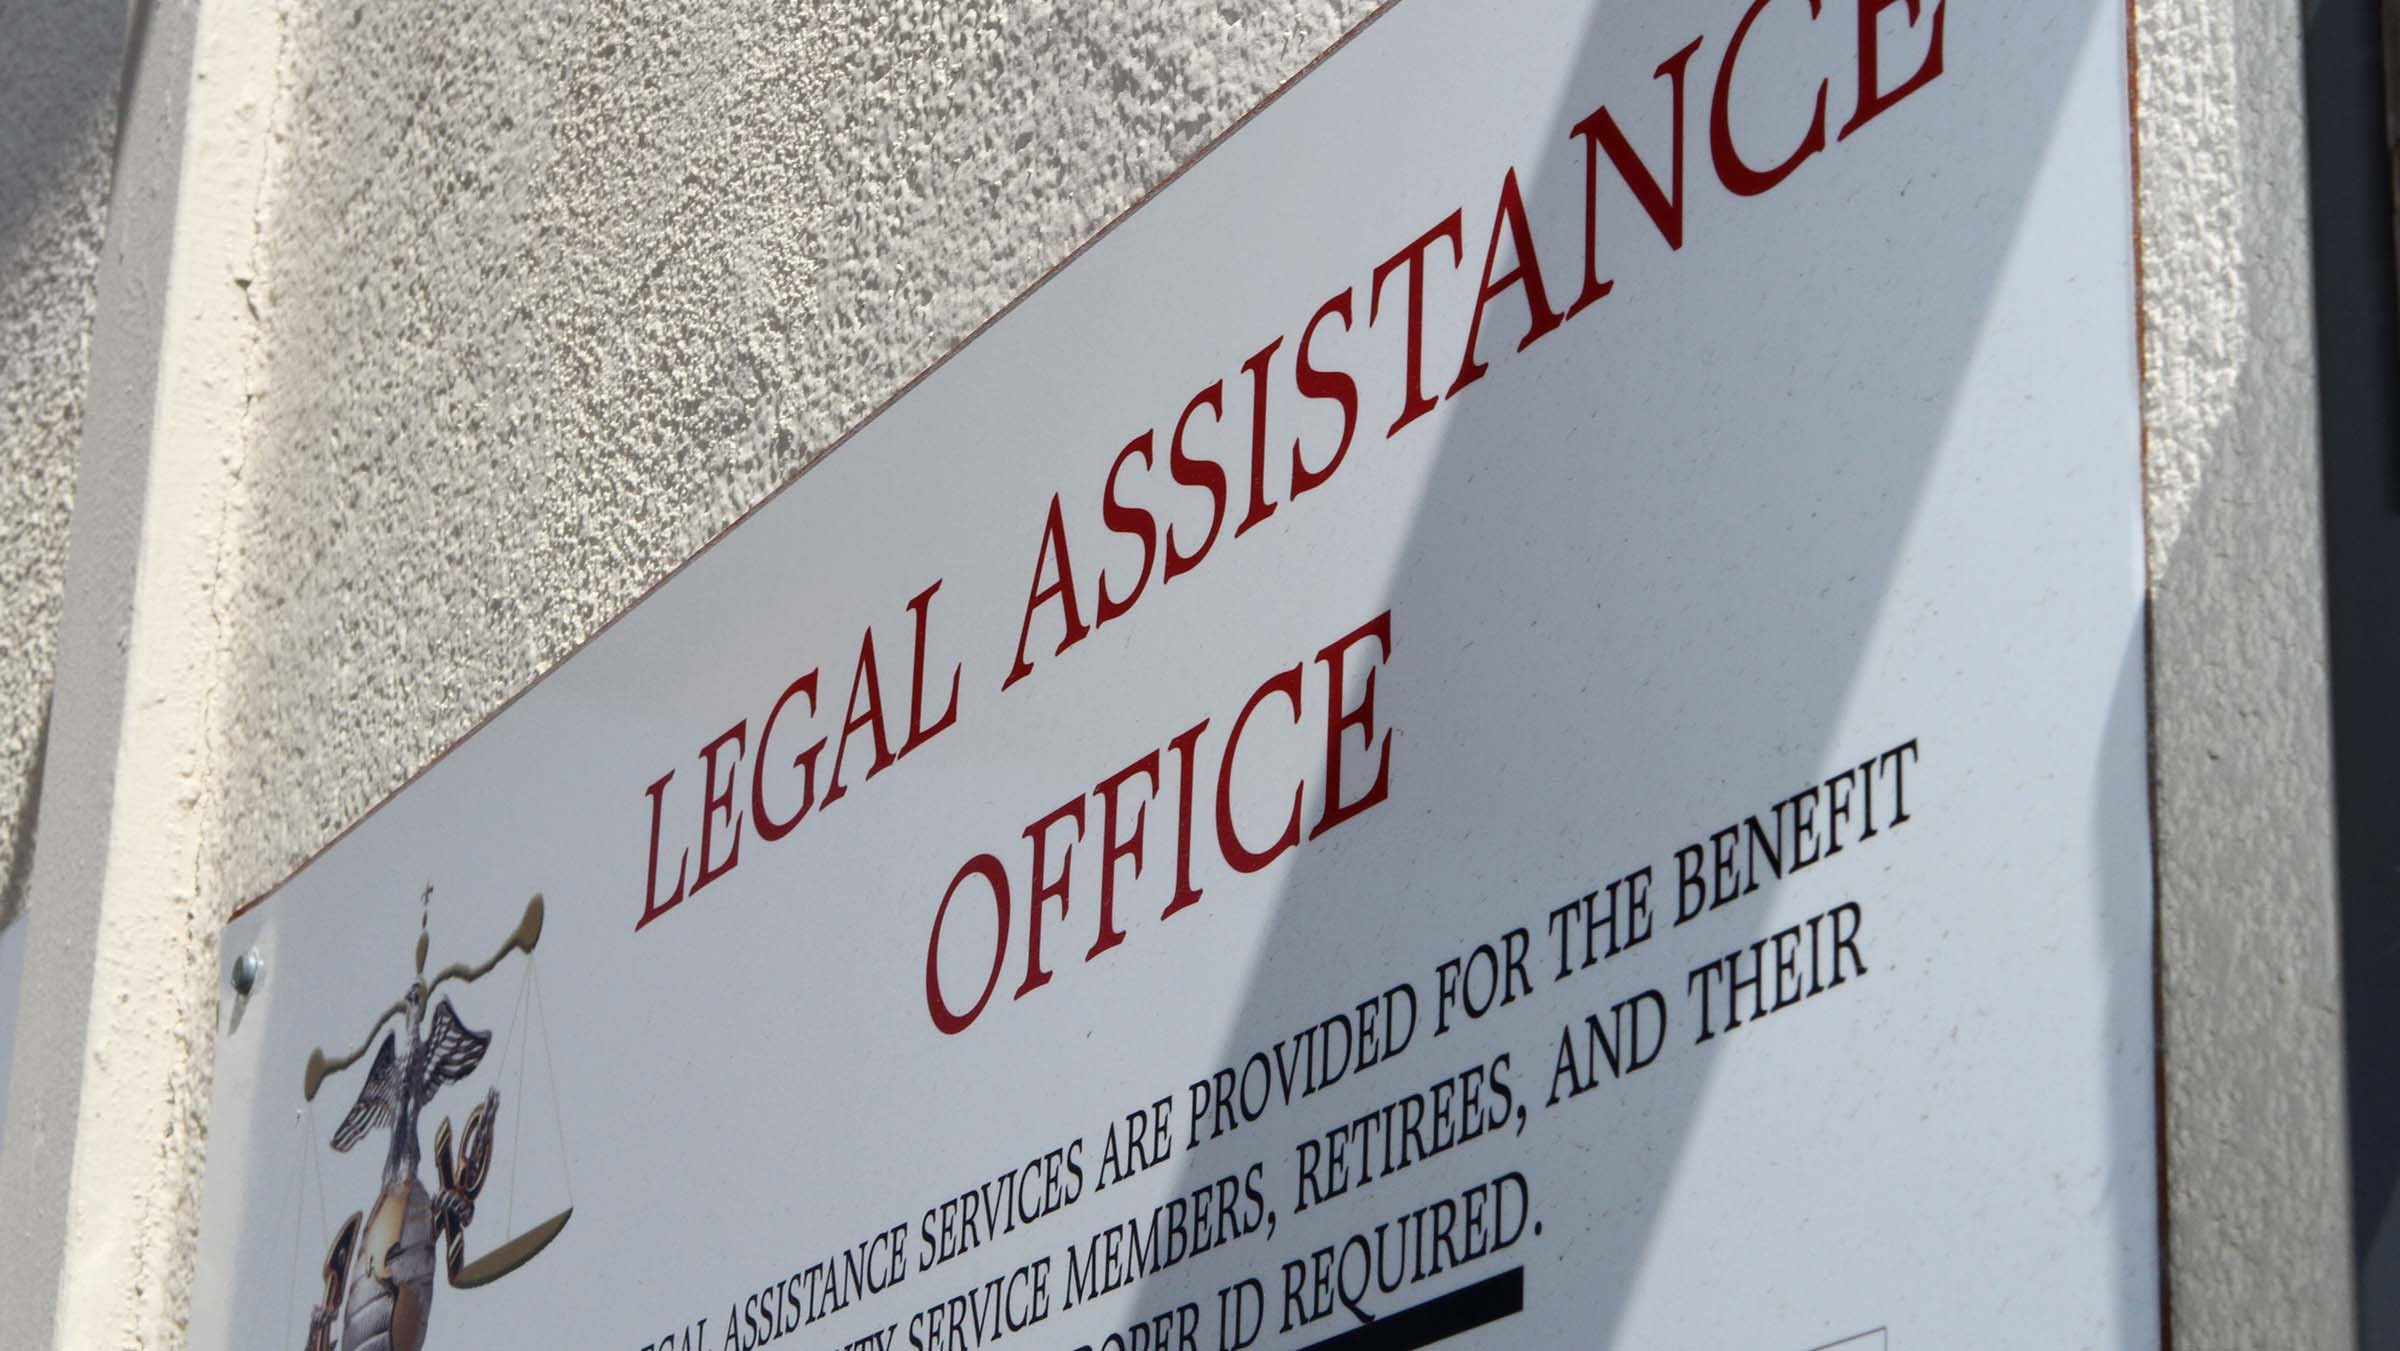 Sign for a Legal Assistance Office on a military installation